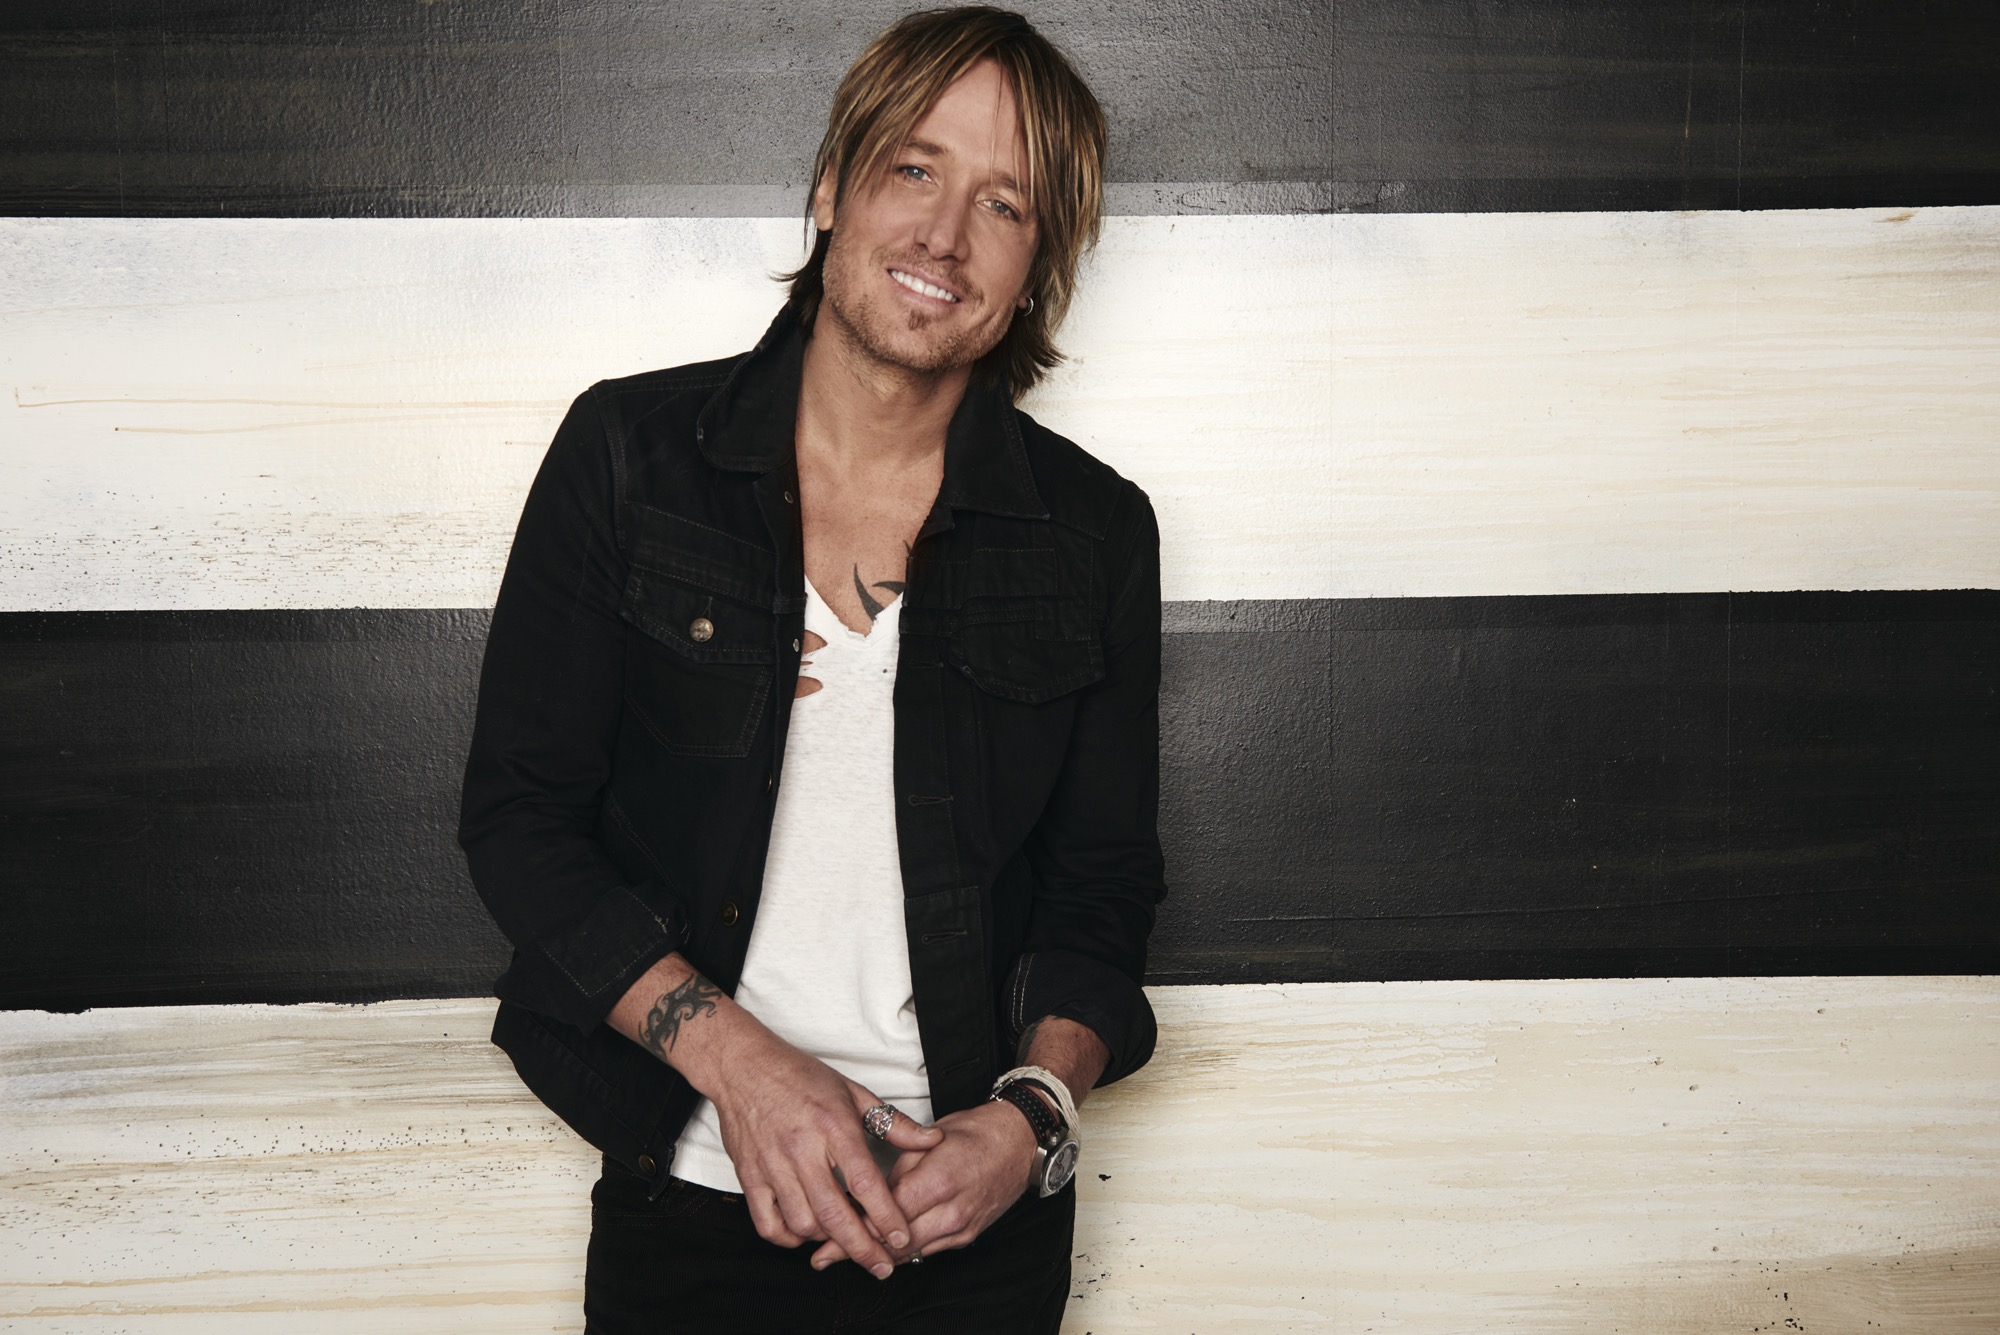 Keith Urban and Songwriter Bob DiPiero To Be Honored at 2017 BMI Country Awards